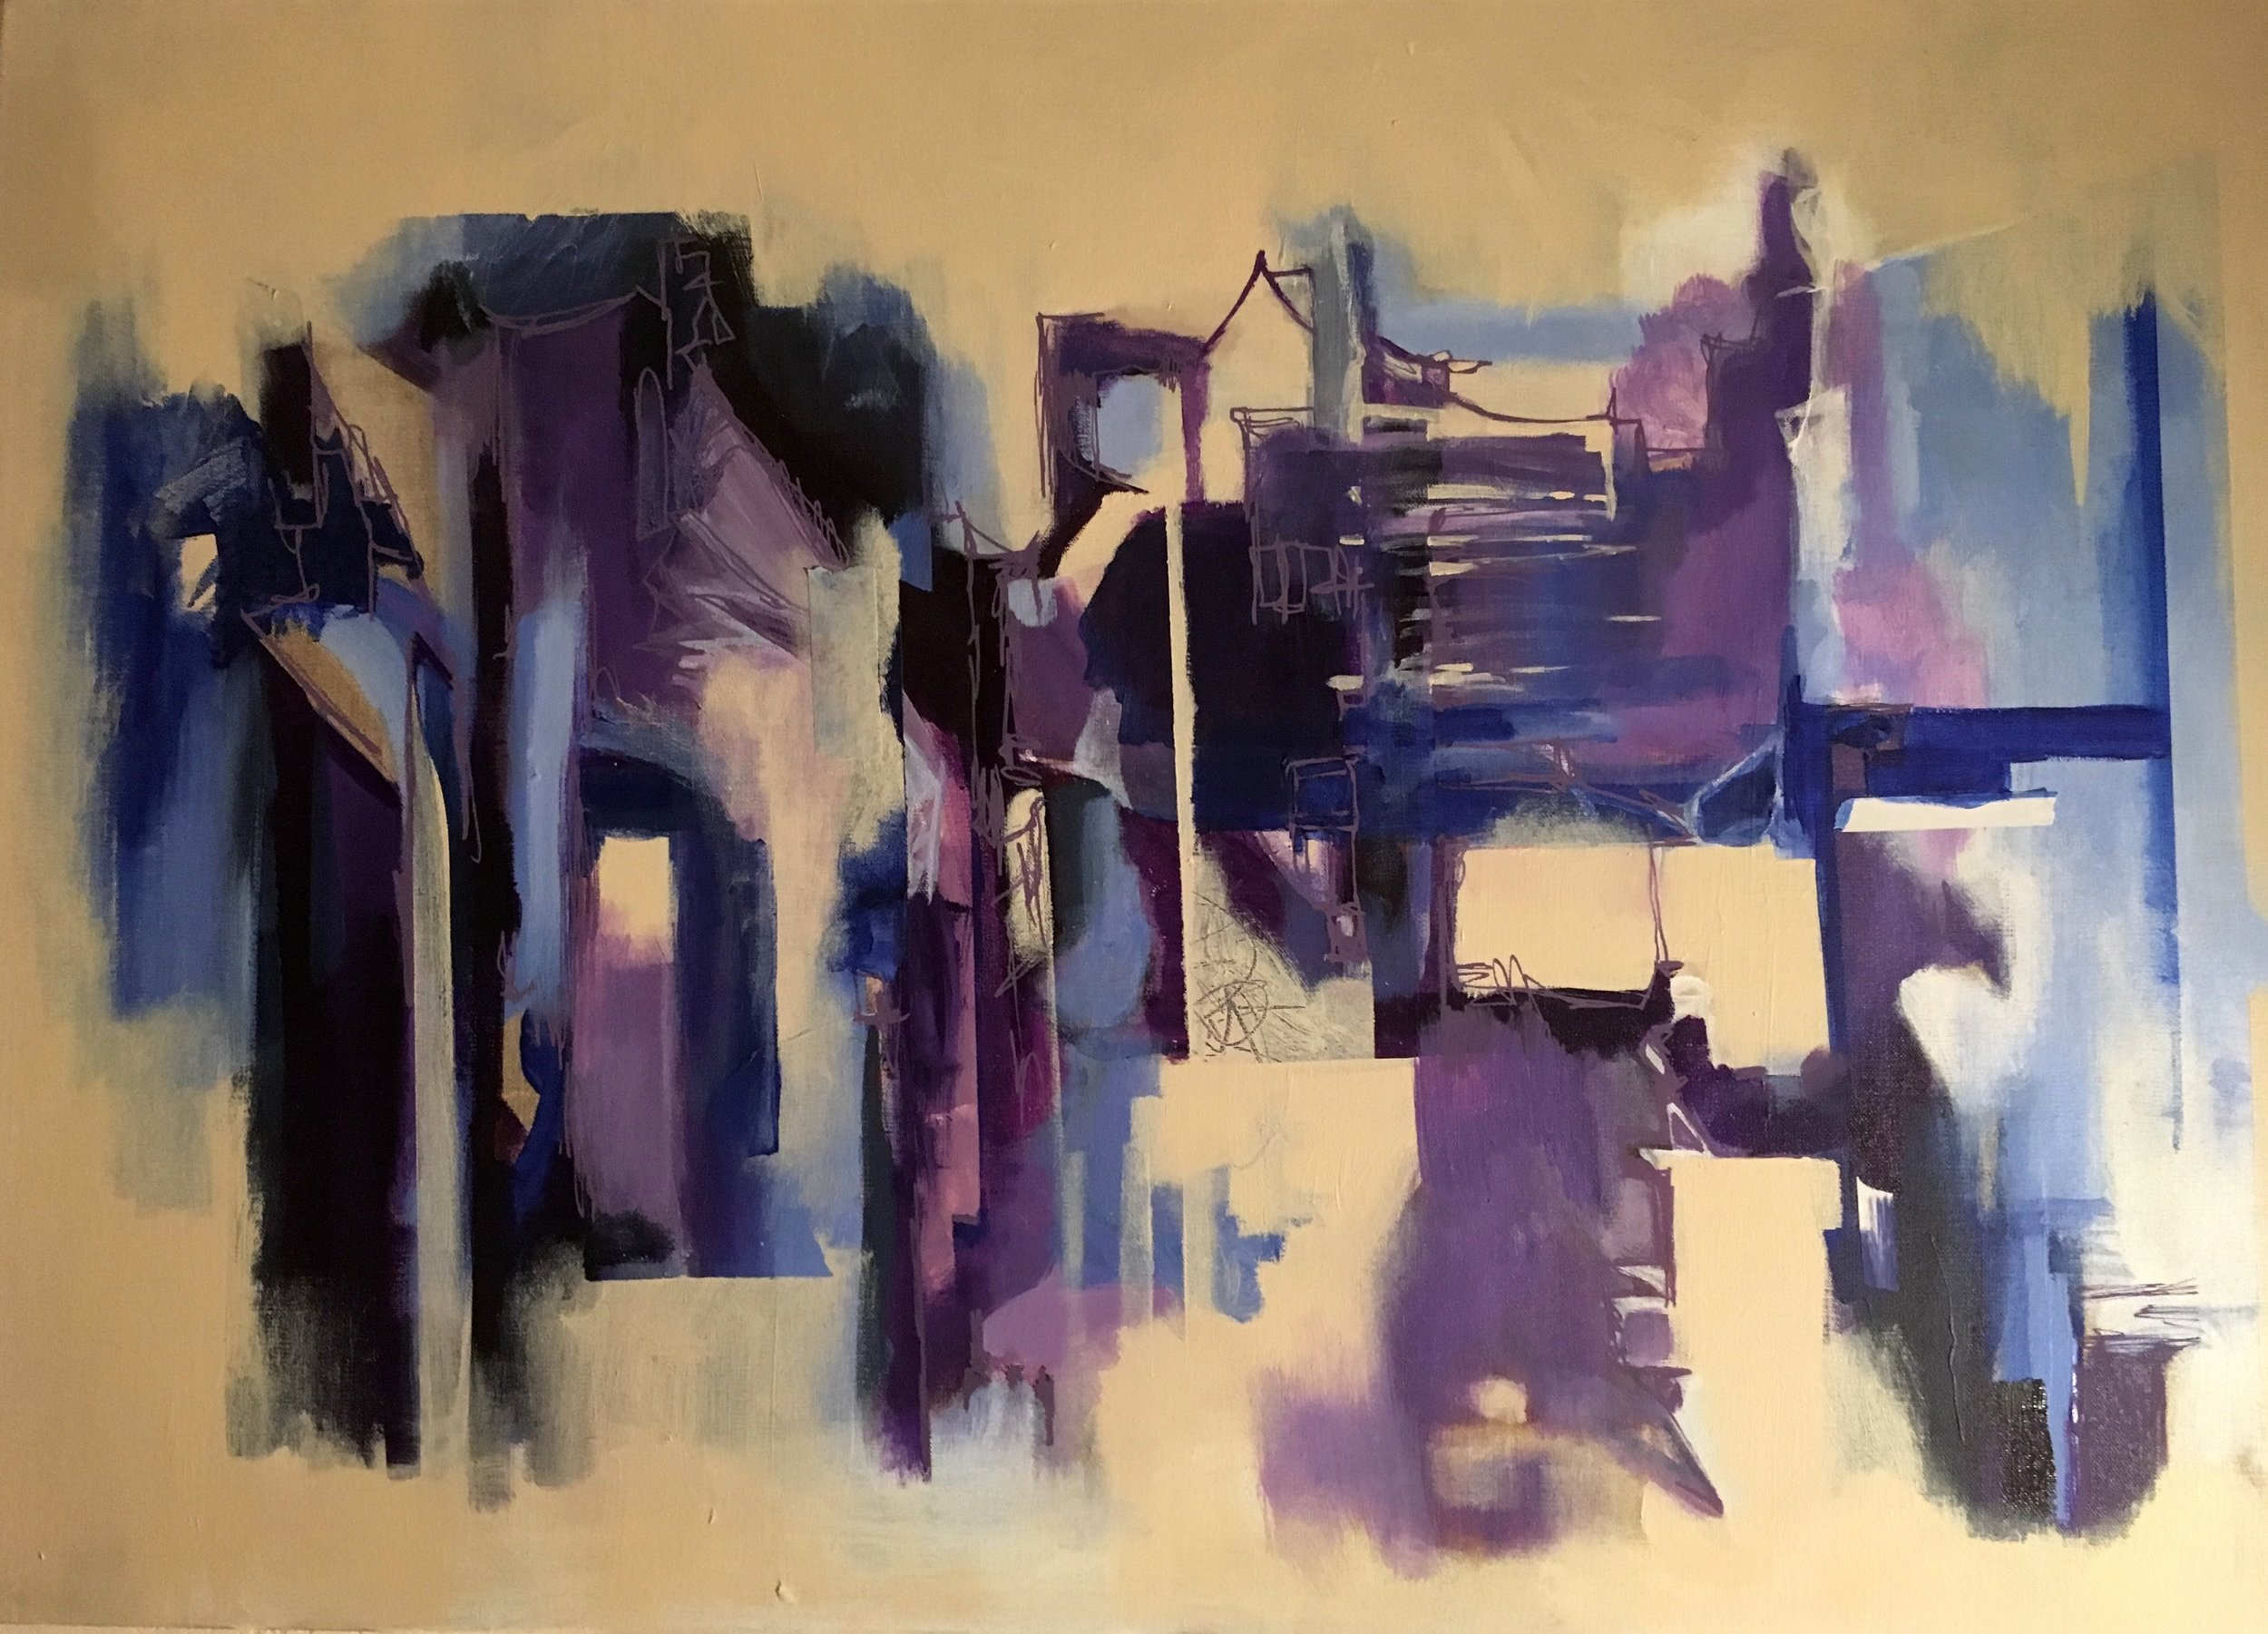 """ Night City"" acrylic on linen 24"" x 32"" $600"